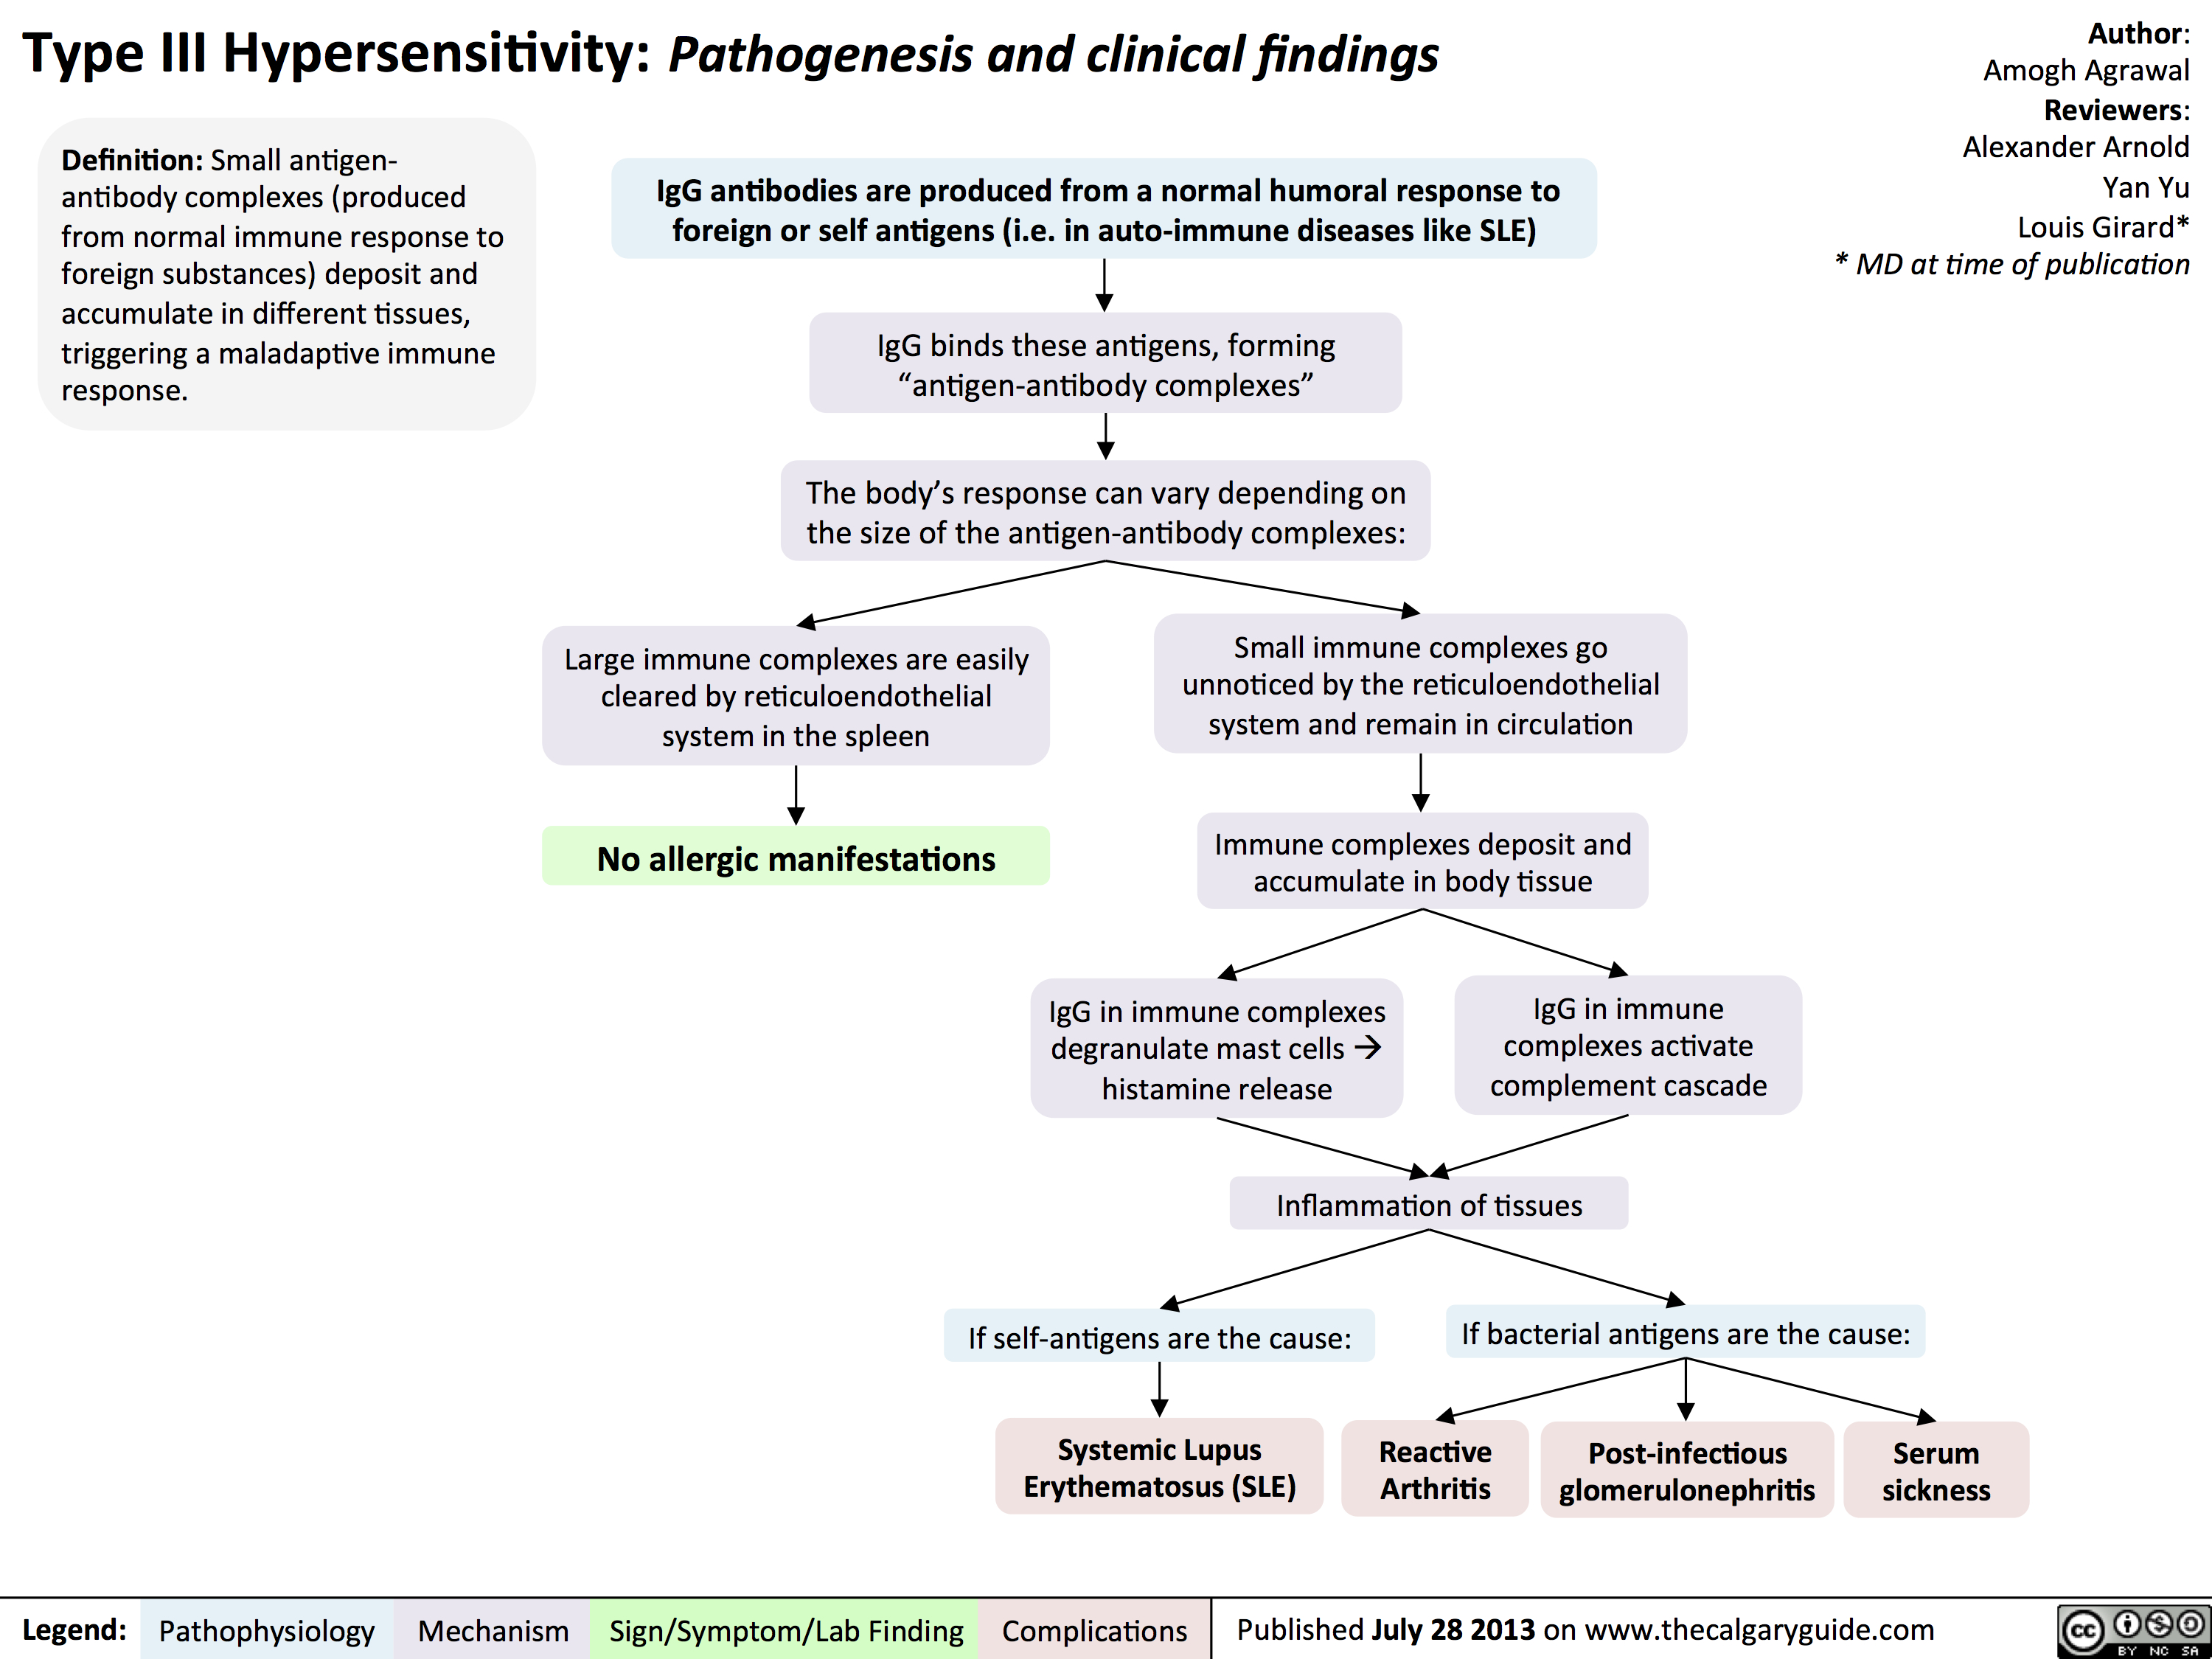 Type III Hypersensitivity: Pathogenesis and clinical findings